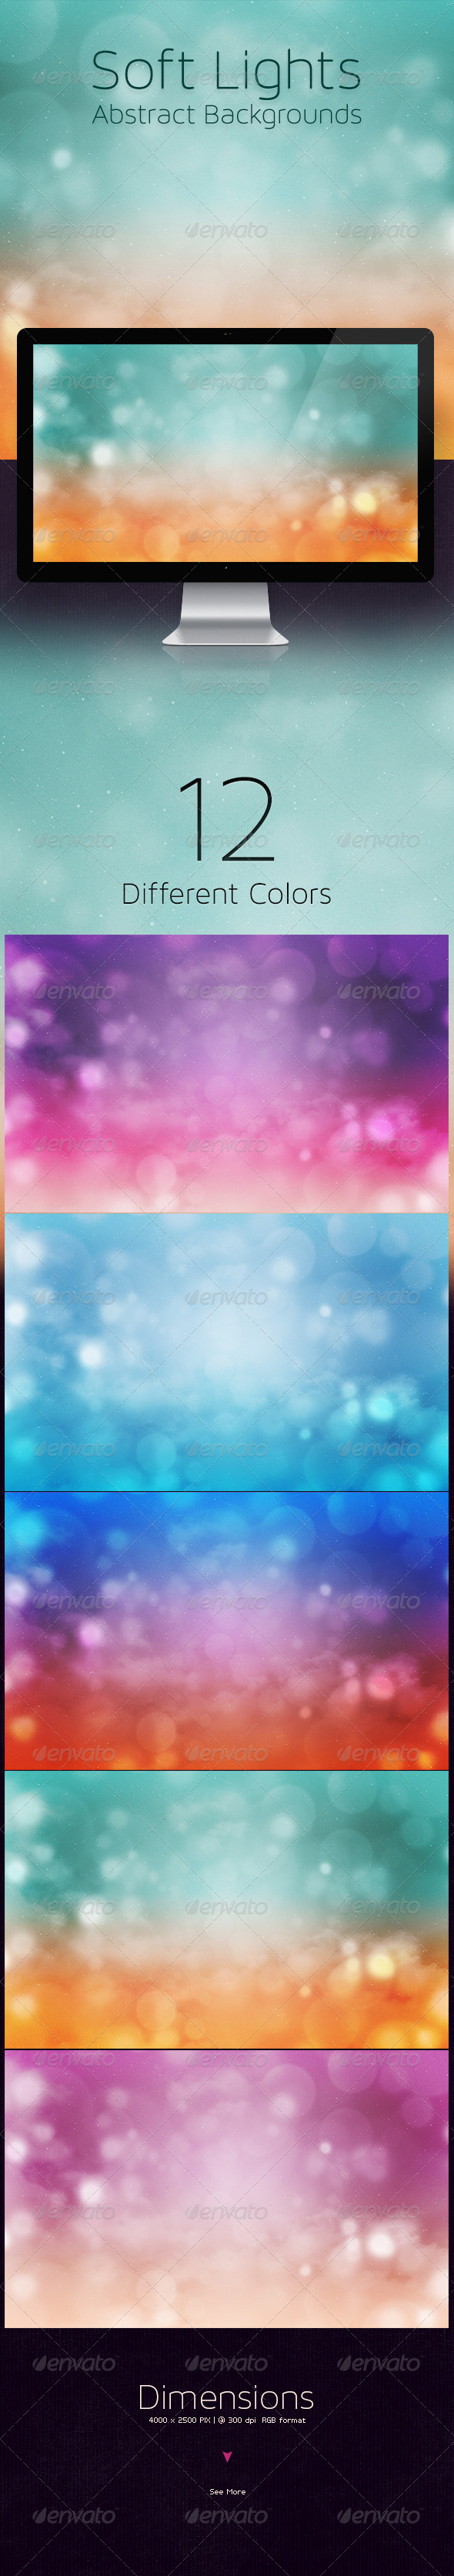 GraphicRiver Soft Lights Abstract Backgrounds 5748970